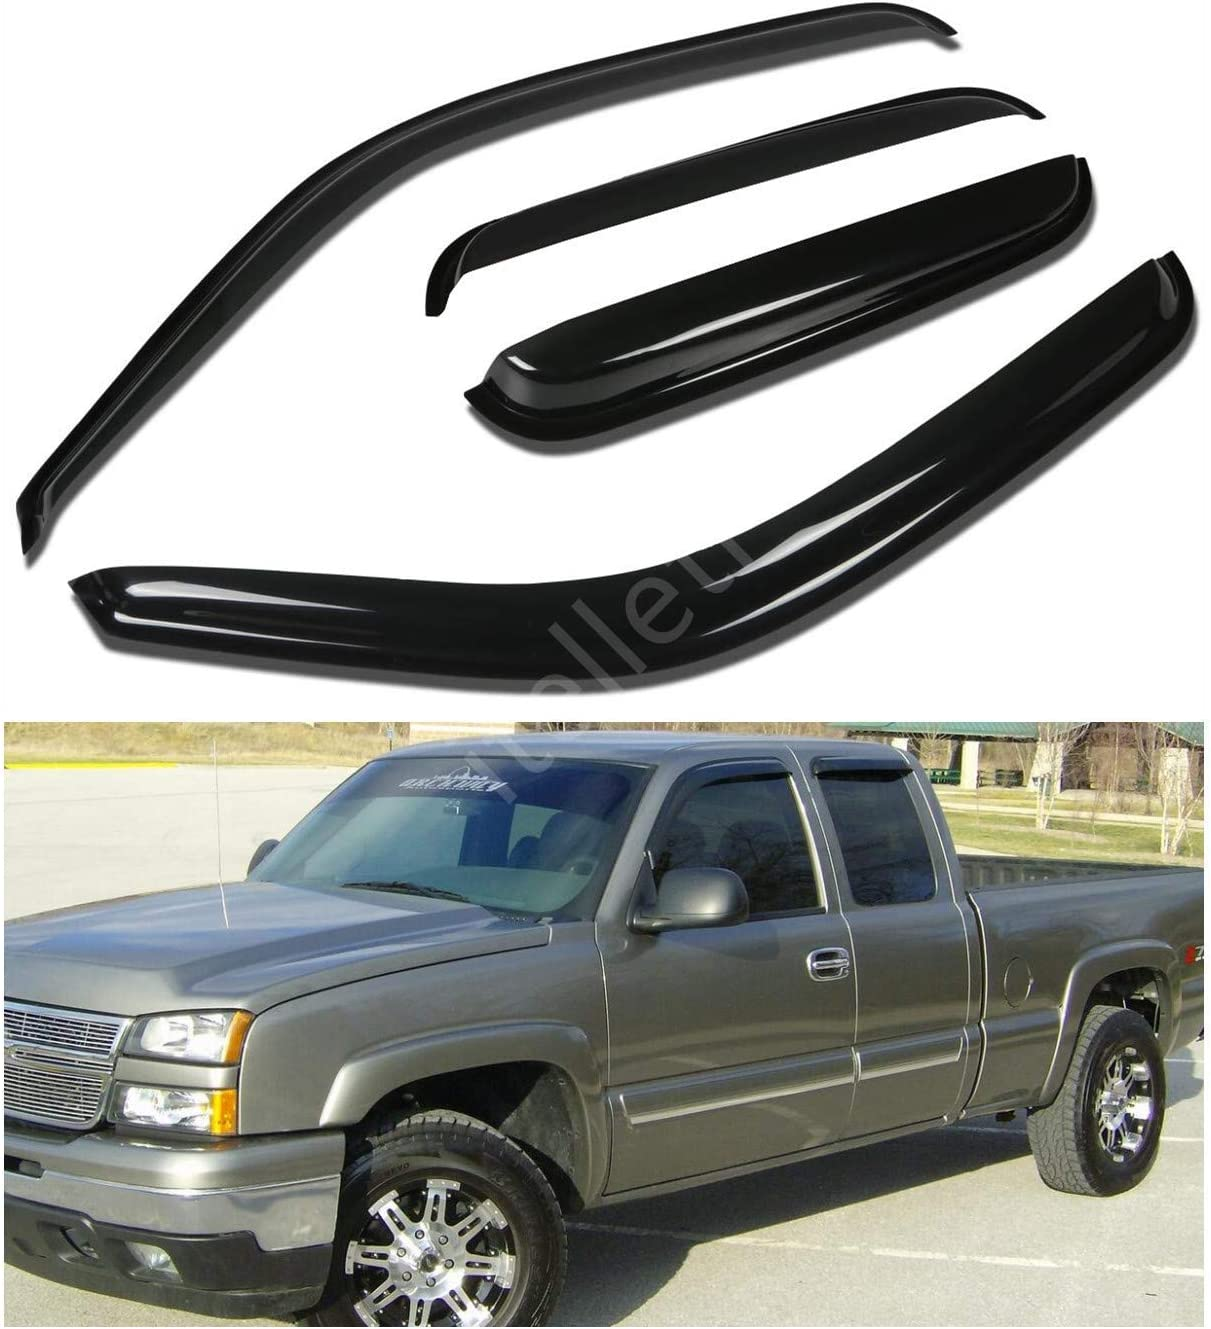 itelleti 4pcs Outside Mount Dark Smoke Sun//Rain Guard Front+Rear Tape-On Auto Window Visors For 99-06 Chevy Silverado//GMC Sierra 07 Classic Body 1500//2500//3500 HD Extended Cab With Half Size Rear Door